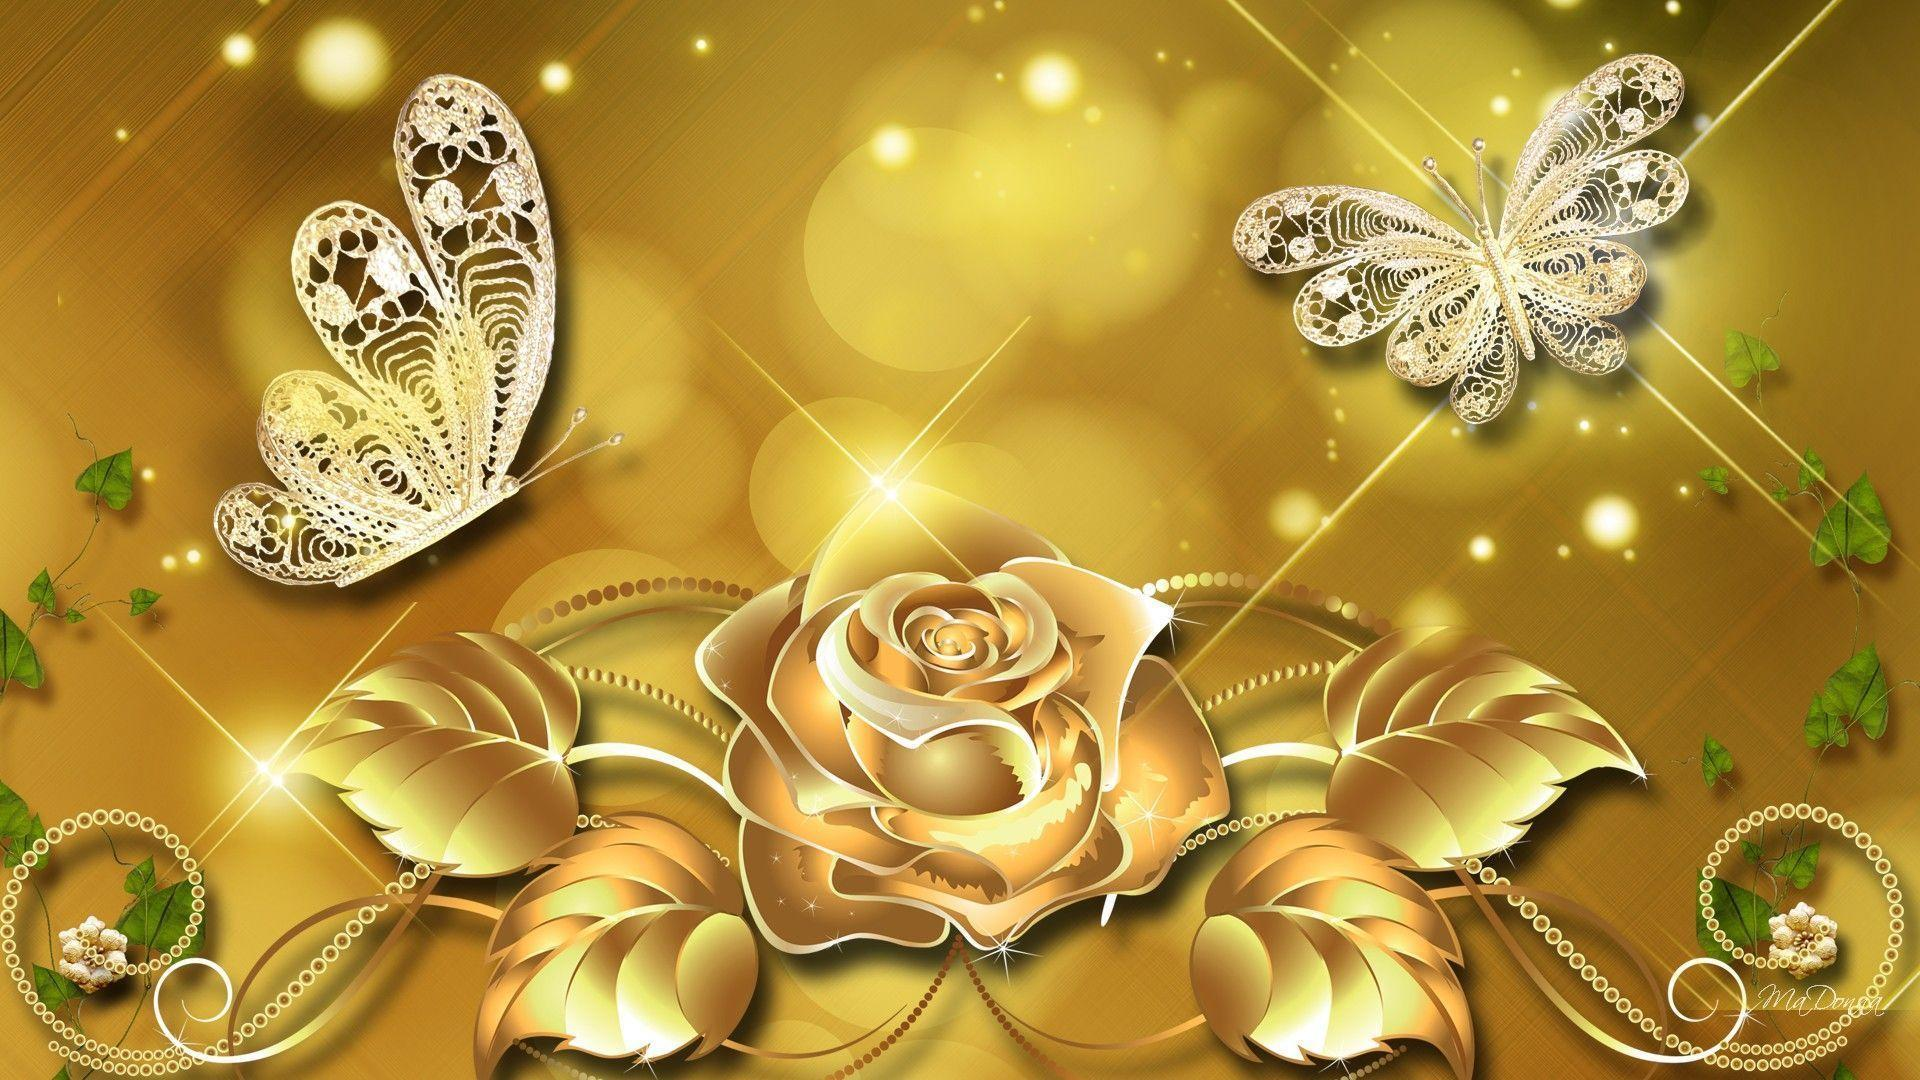 white and gold floral wallpaper - photo #42